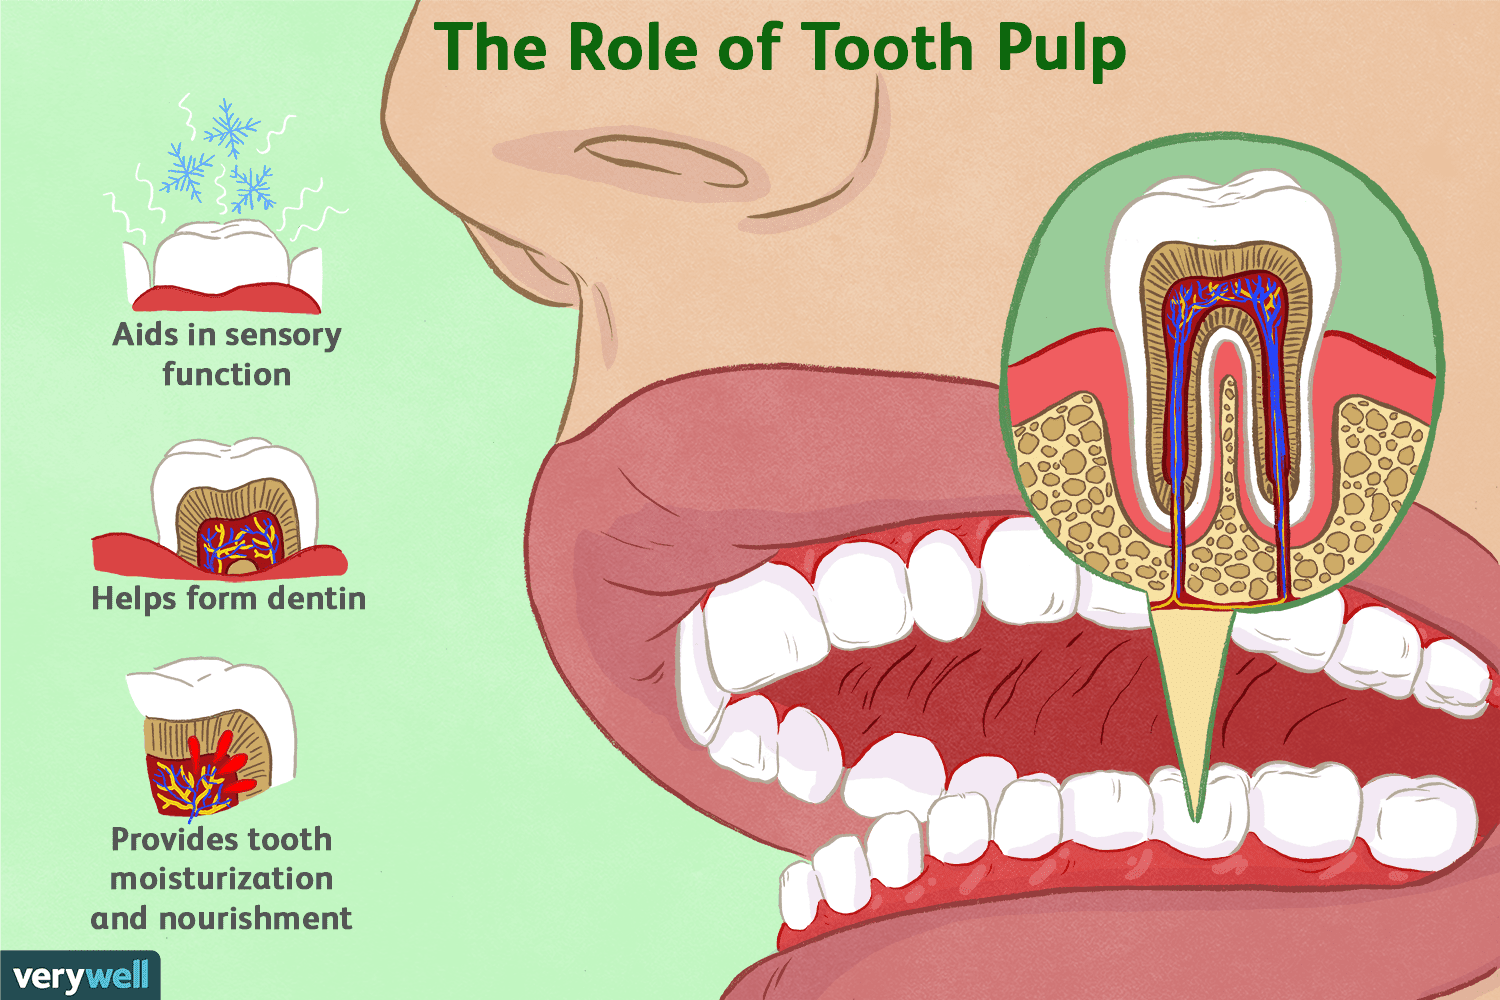 Role and function of tooth pulp